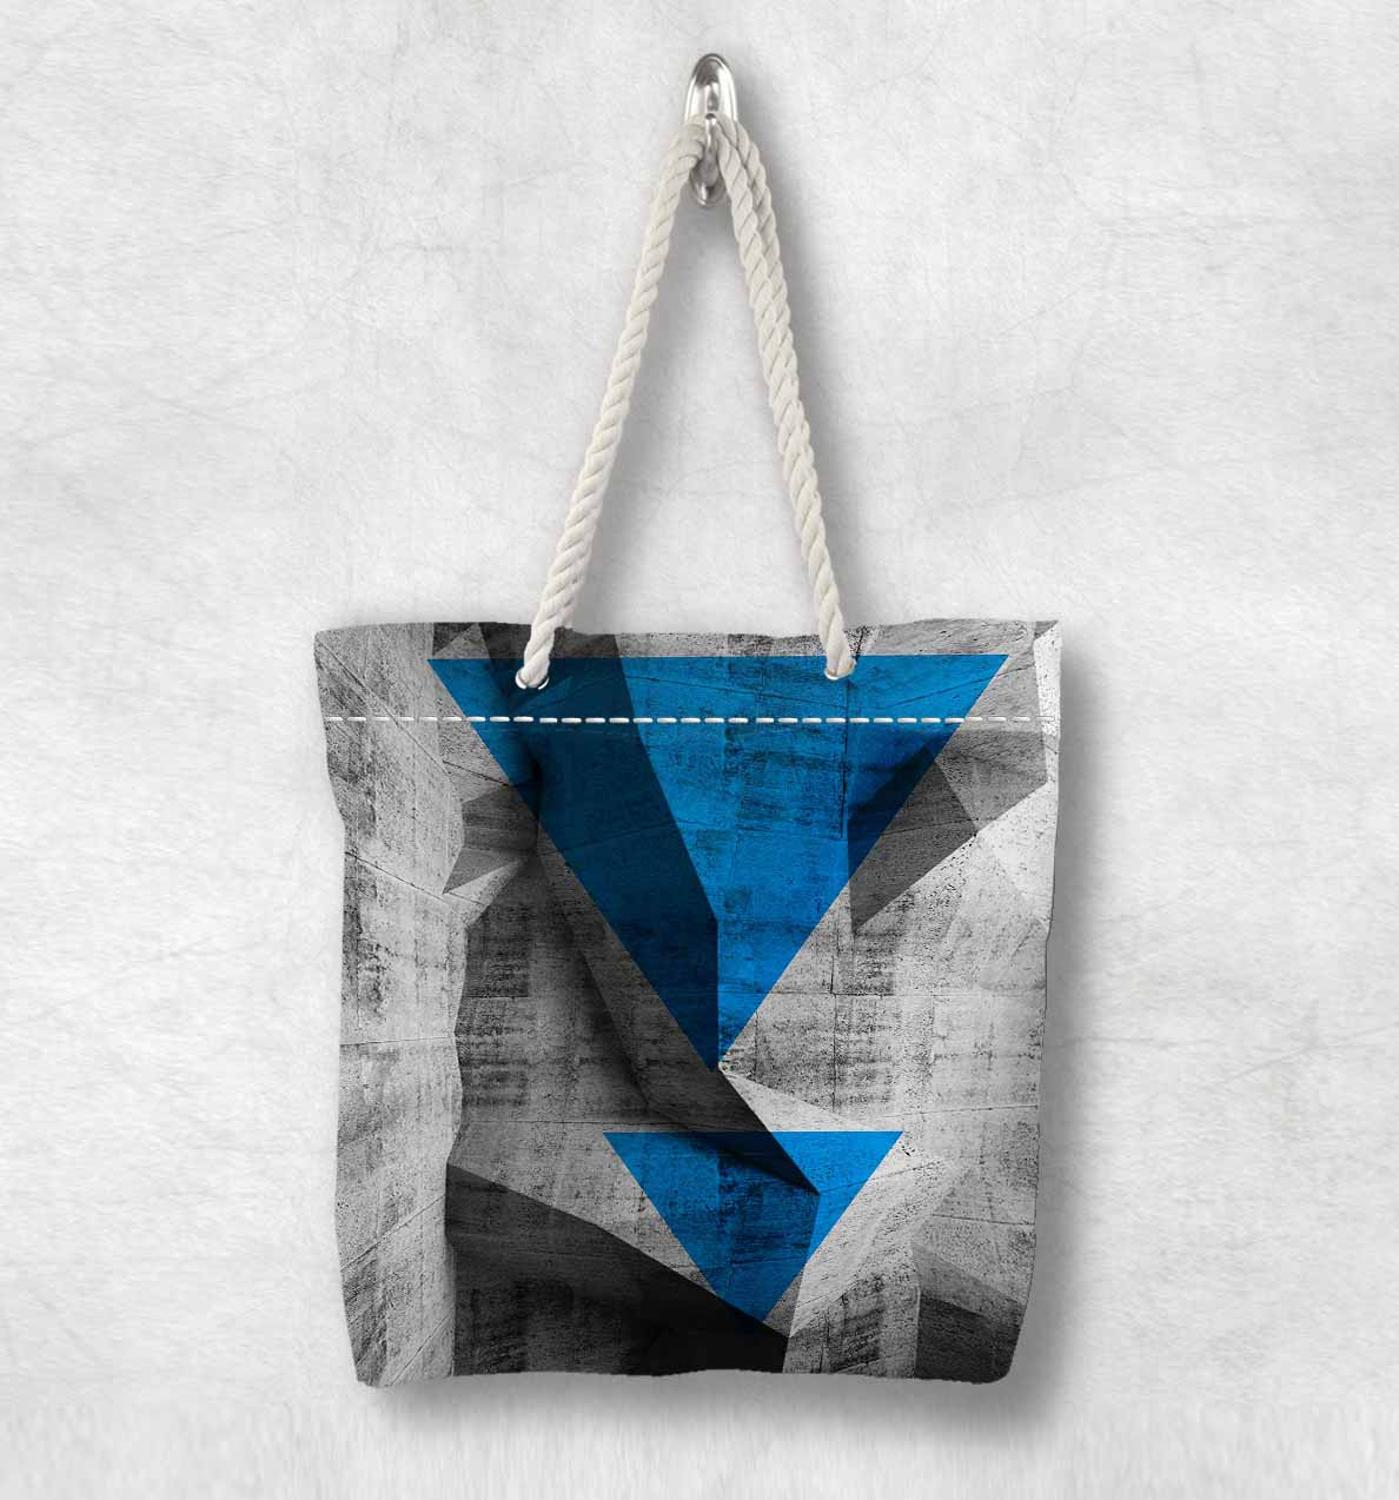 Else Gray Black Blue Triangles Geometric New Fashion White Rope Handle Canvas Bag Cotton Canvas Zippered Tote Bag Shoulder Bag